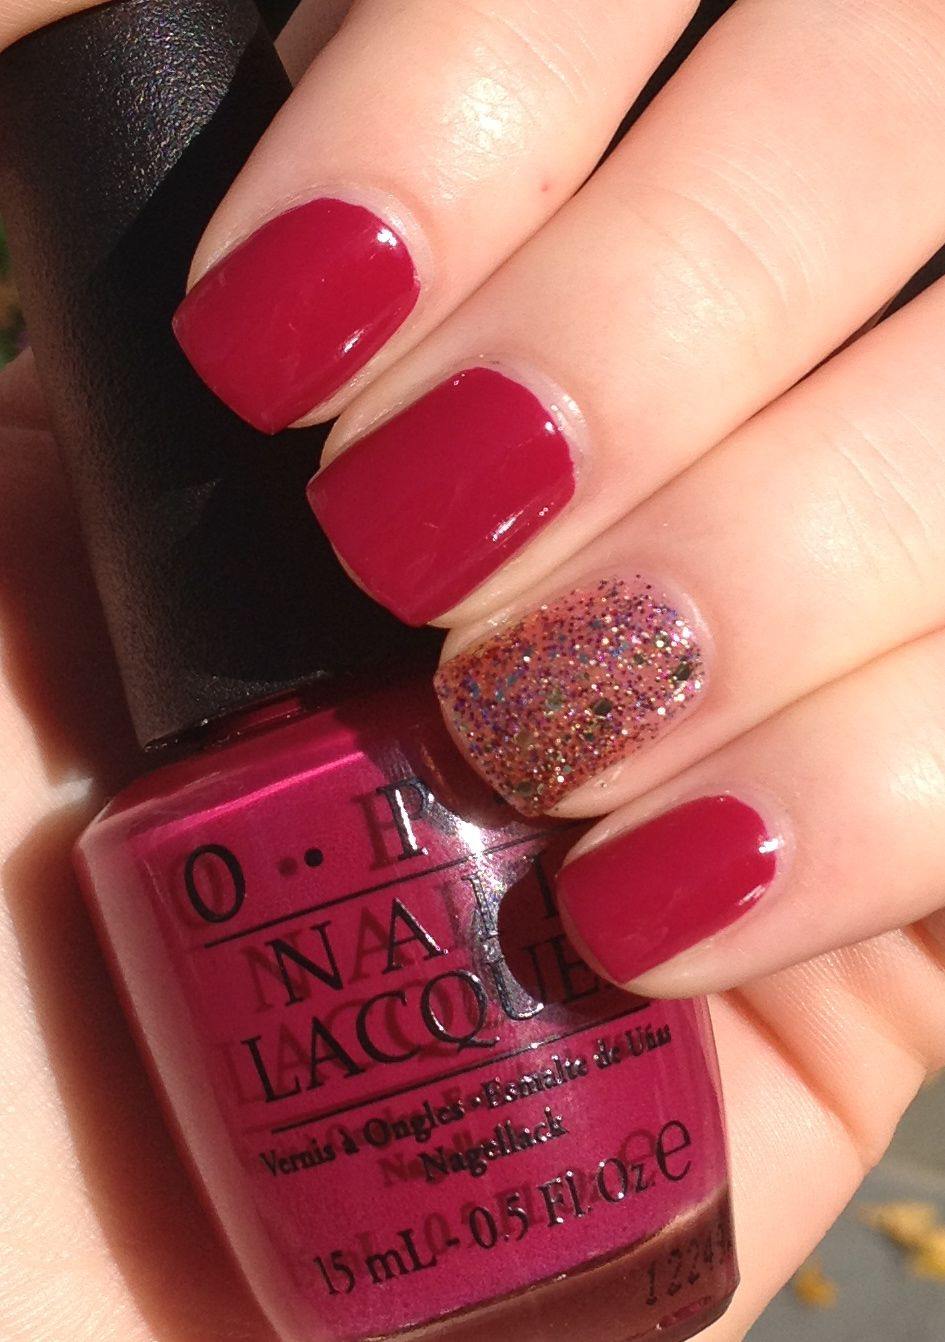 OPI Miami Beet Icing Pop a Bottle | Love nail colour | Pinterest